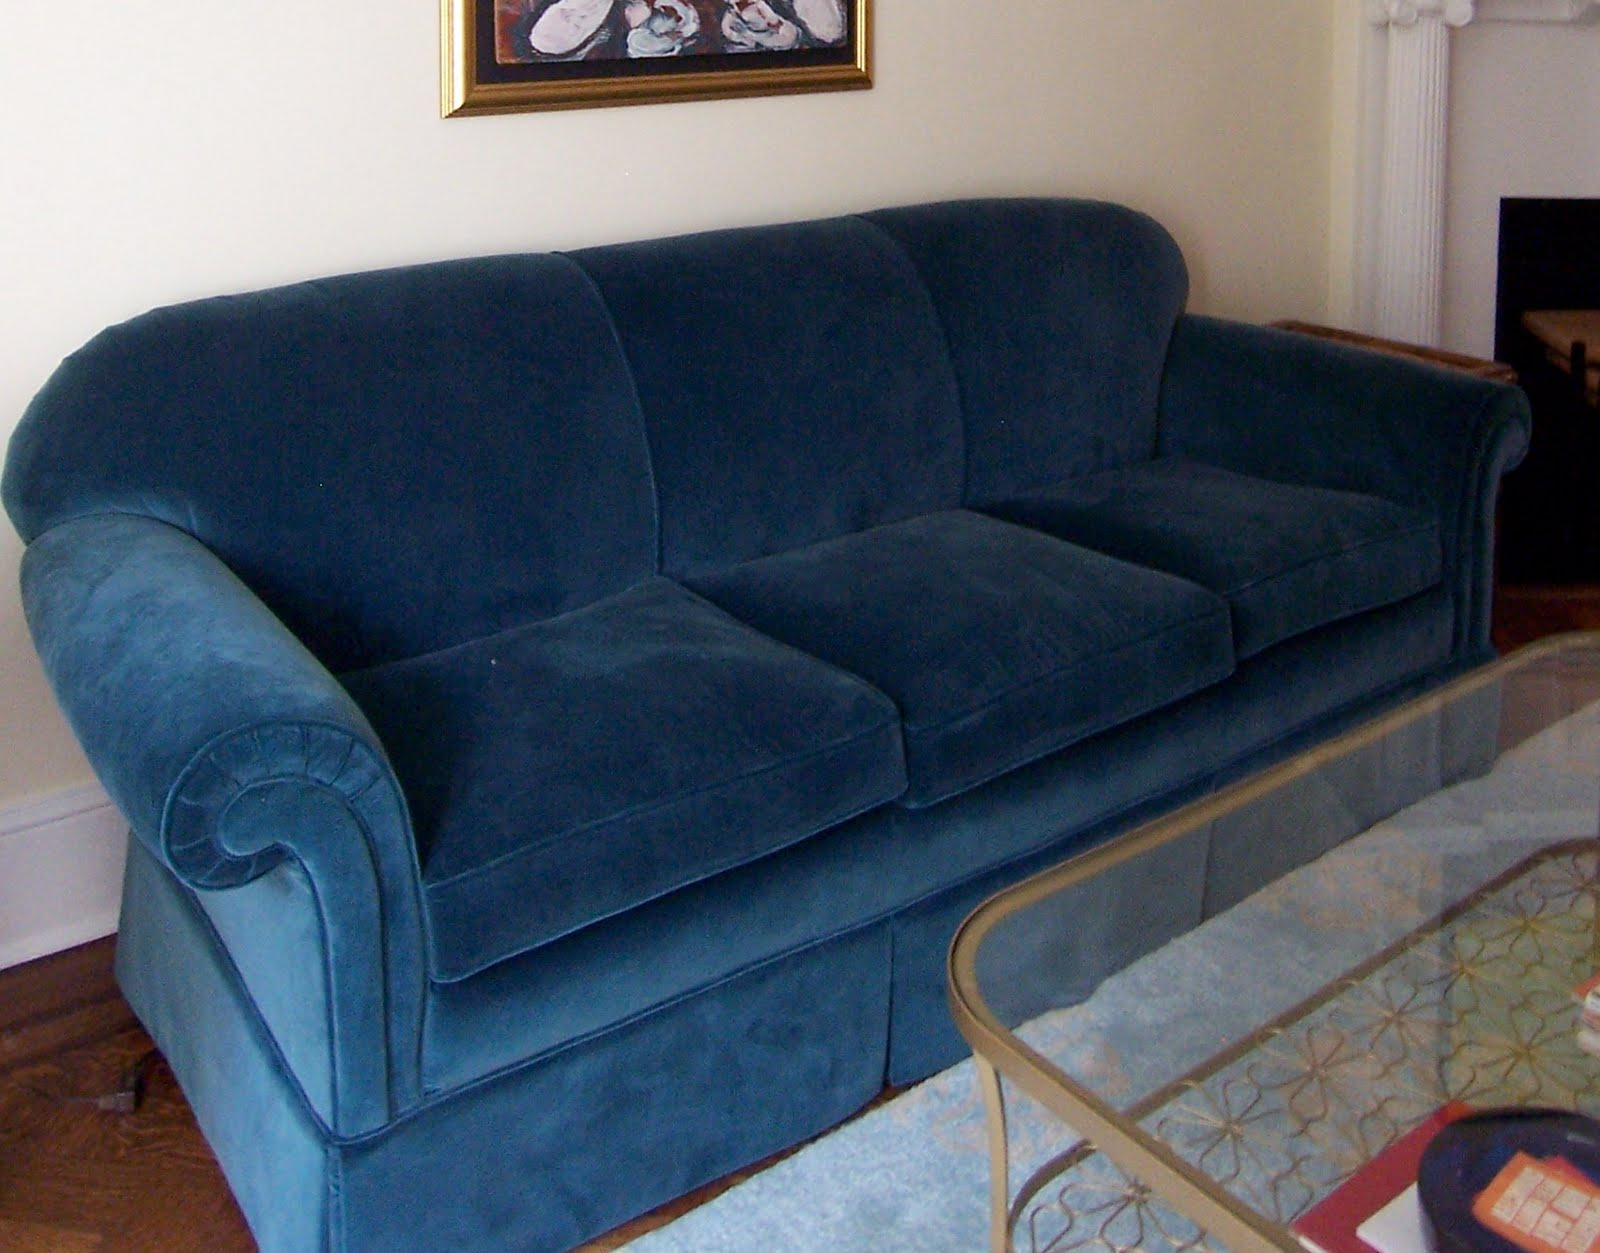 reupholstering furniture is expensive bossy color annie